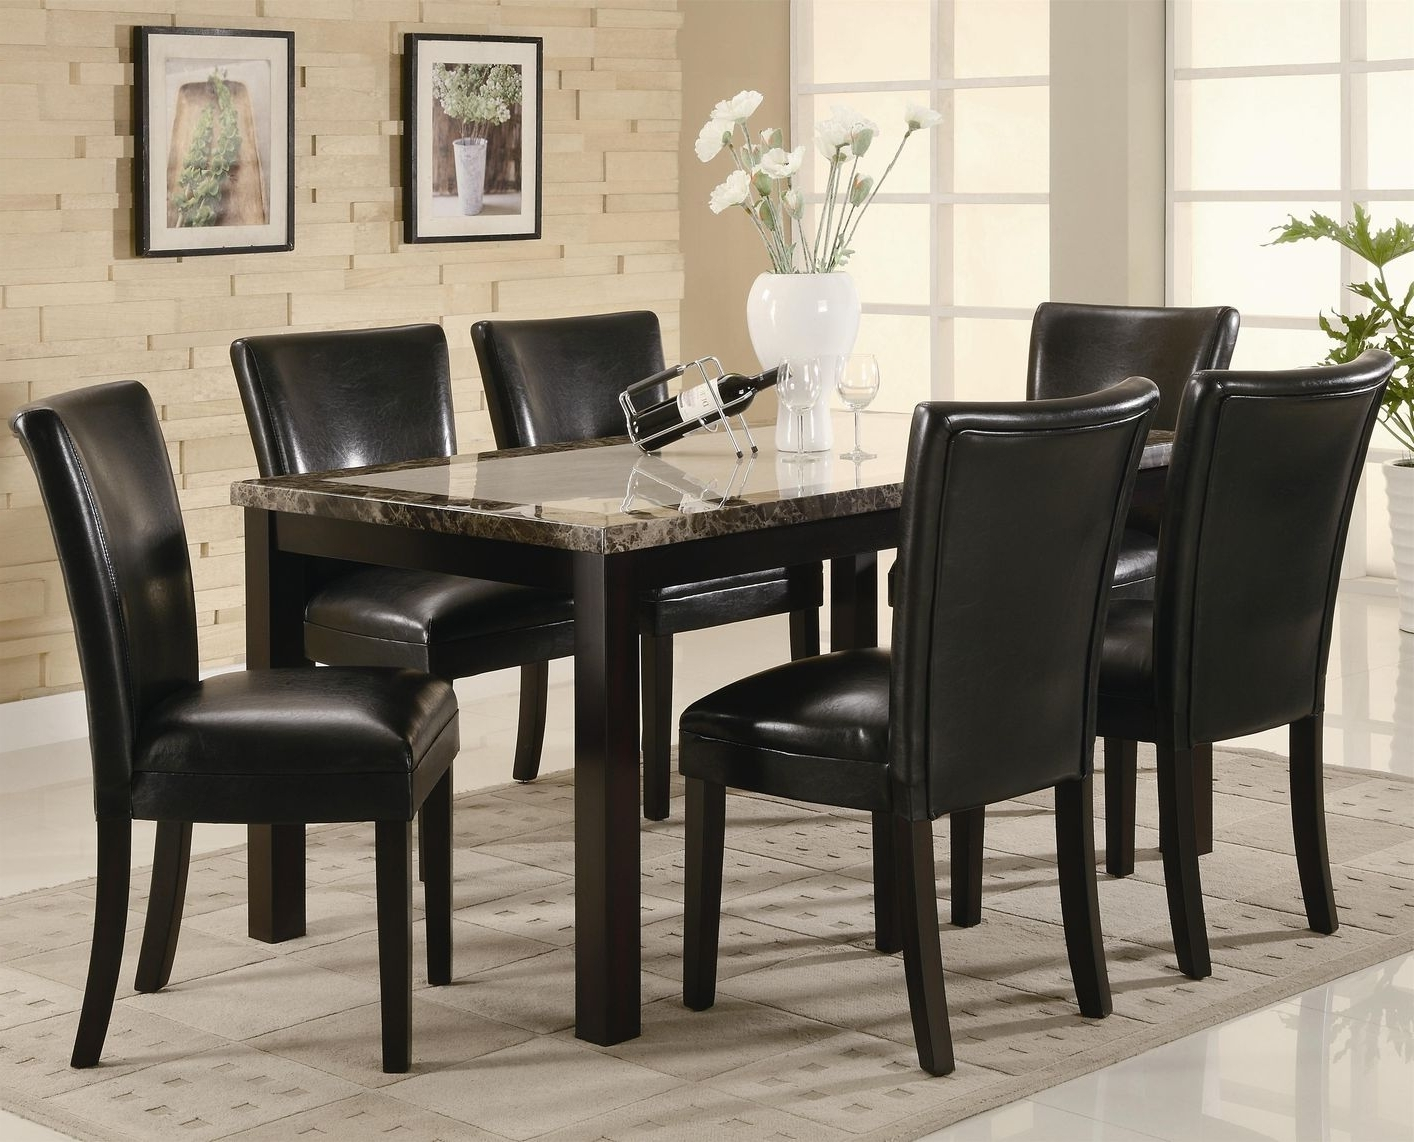 Trendy Marble Dining Tables Sets Regarding Carter Dark Brown Wood And Marble Dining Table Set – Steal A Sofa (View 23 of 25)